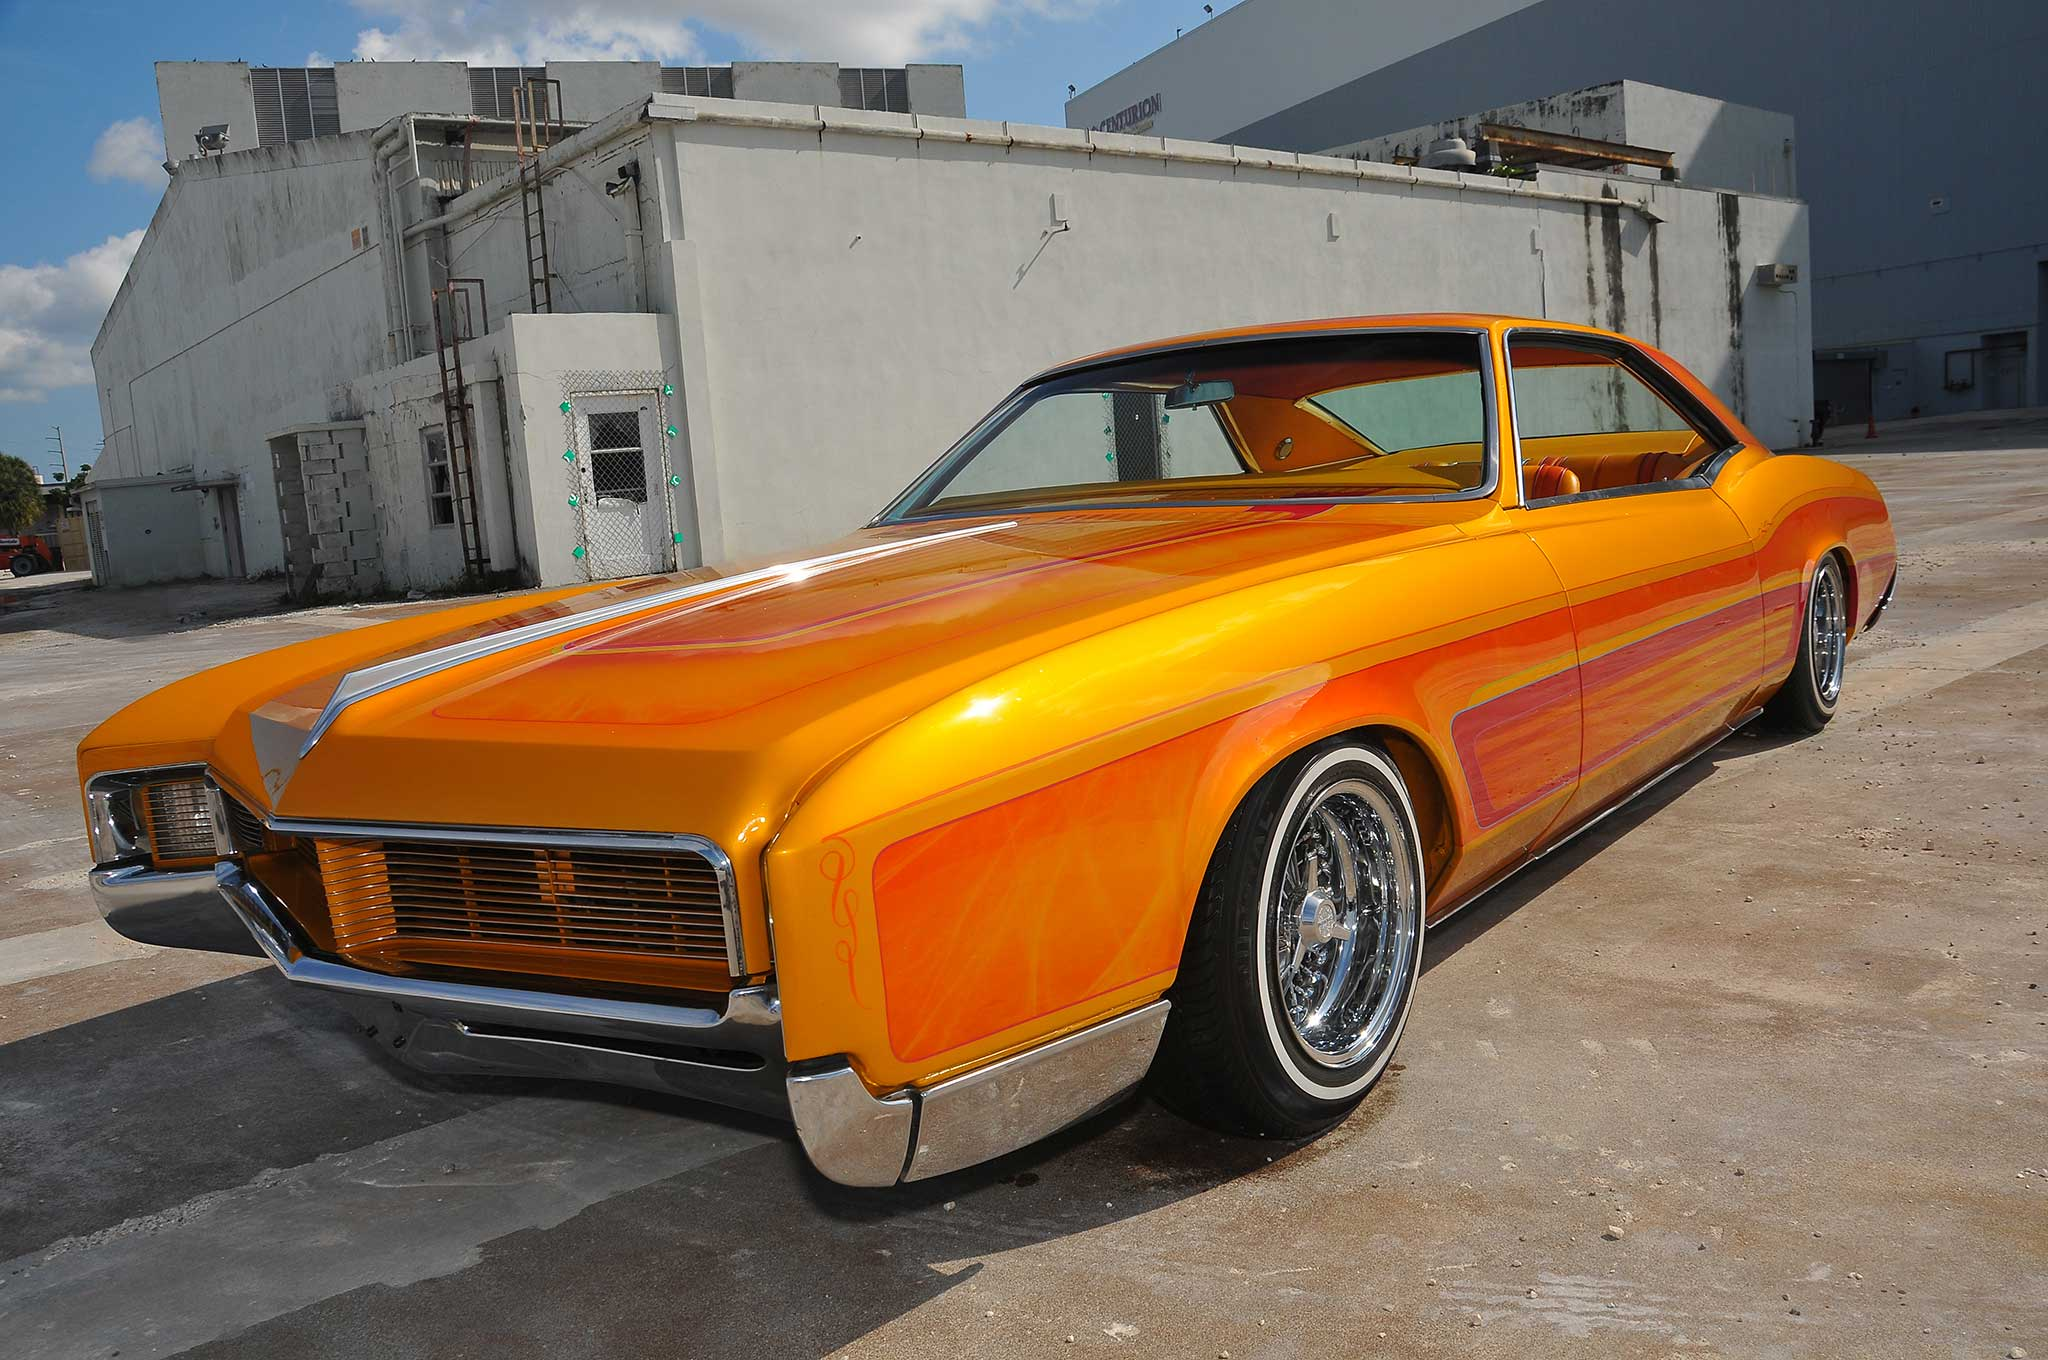 anthony williams 39 passion led him to a 39 66 buick riviera lowrider. Black Bedroom Furniture Sets. Home Design Ideas